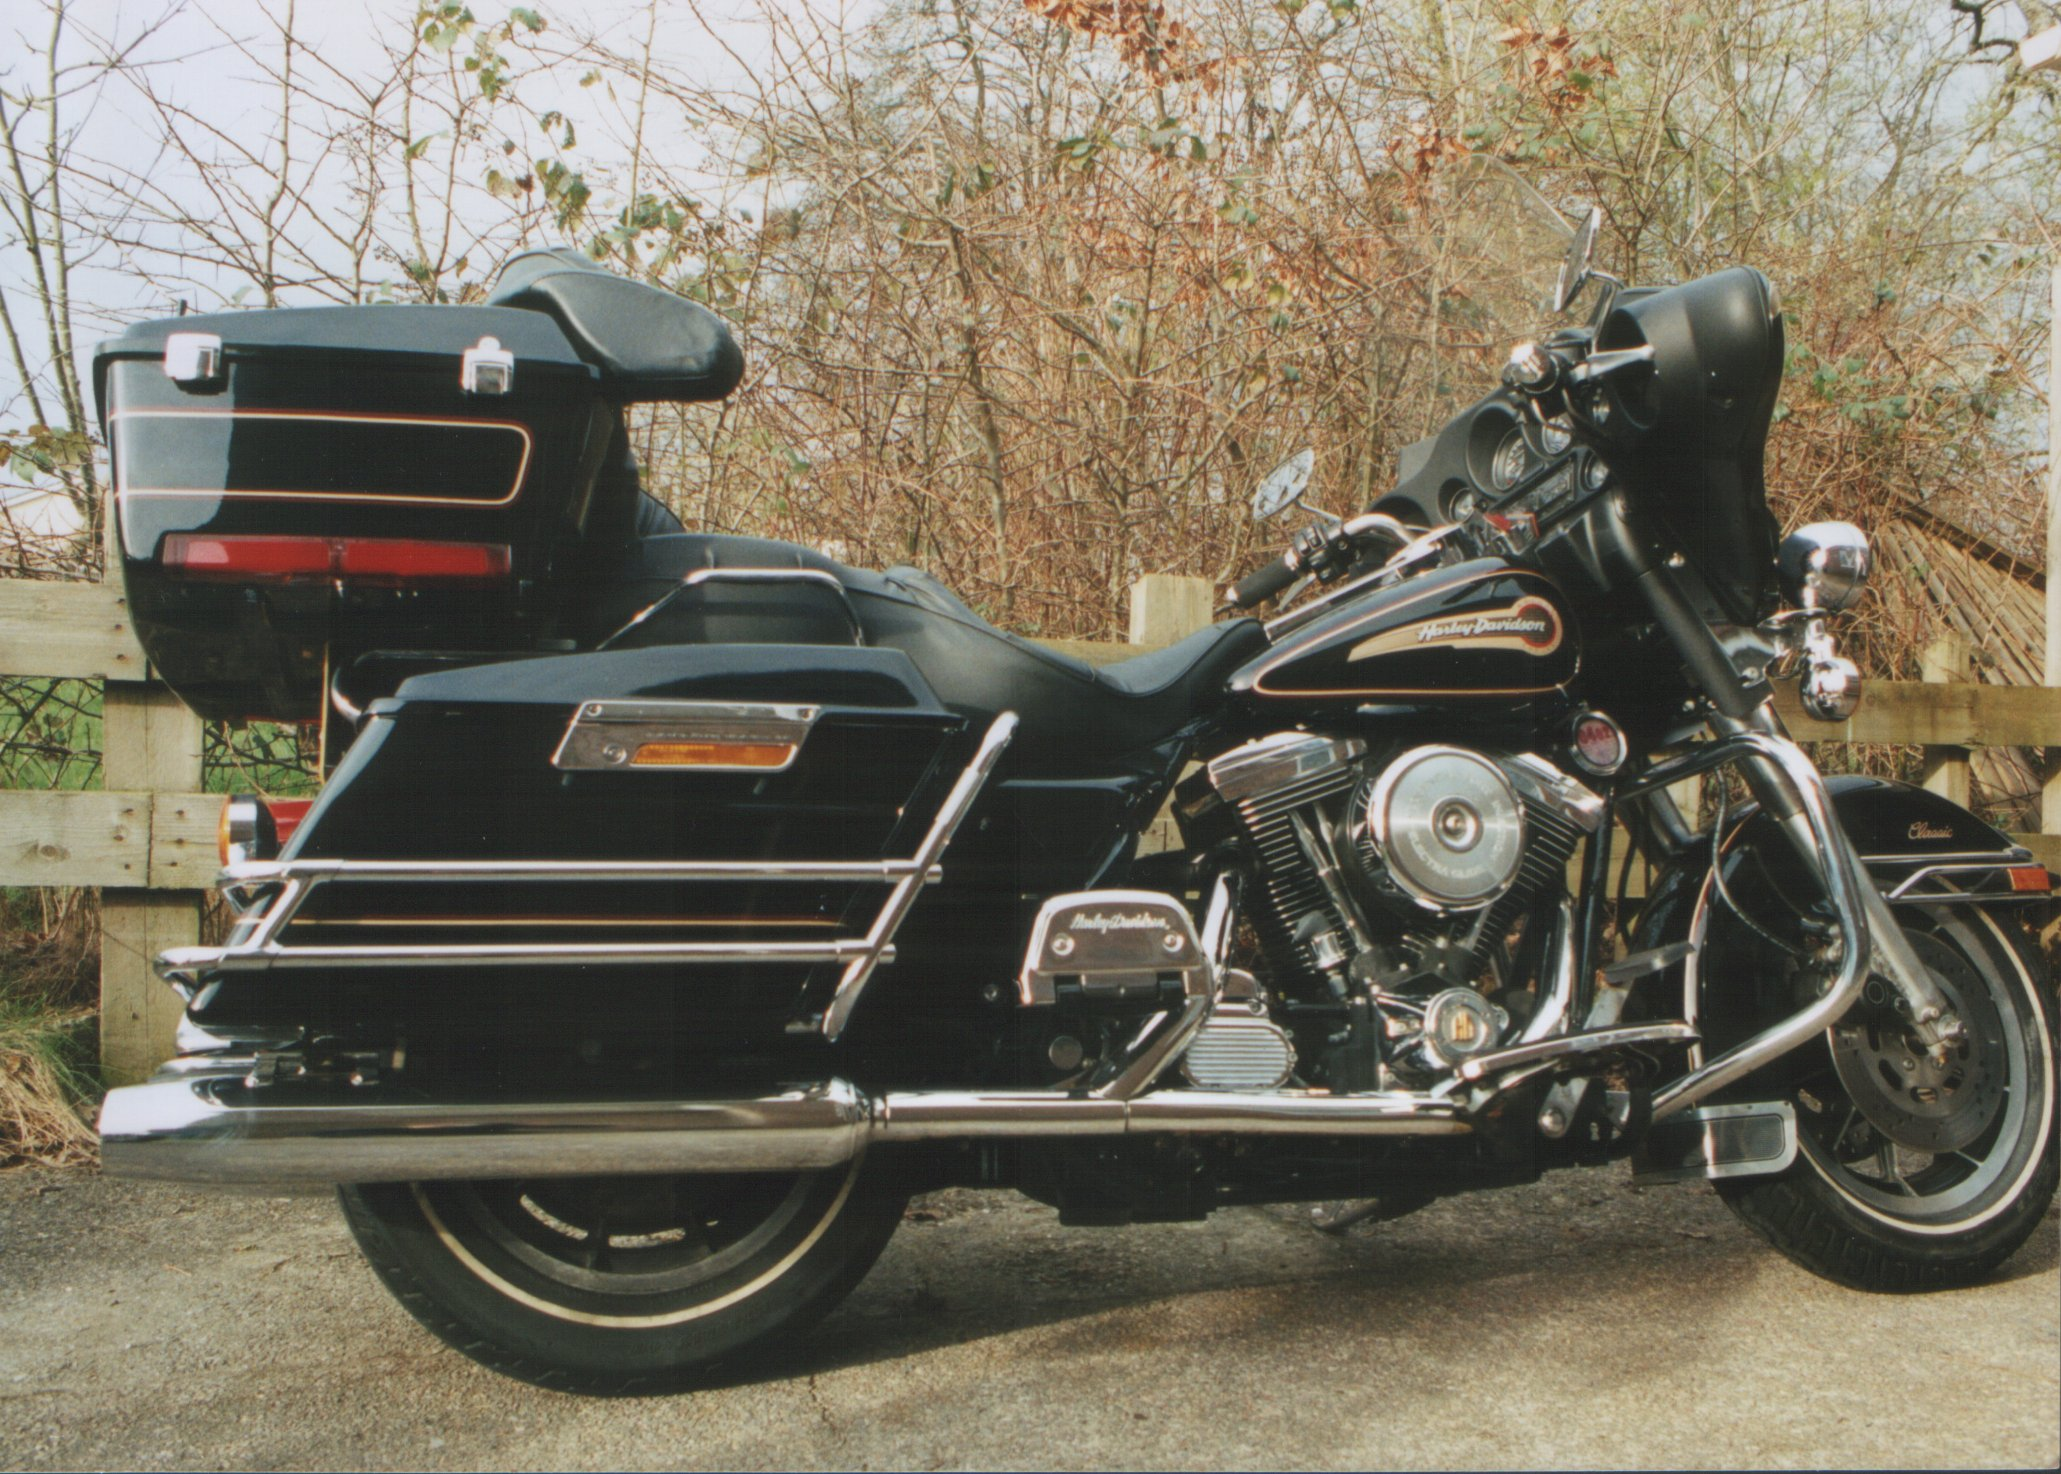 Harley-Davidson FLHTCU Electra Glide Ultra Classic 1992 images #79879